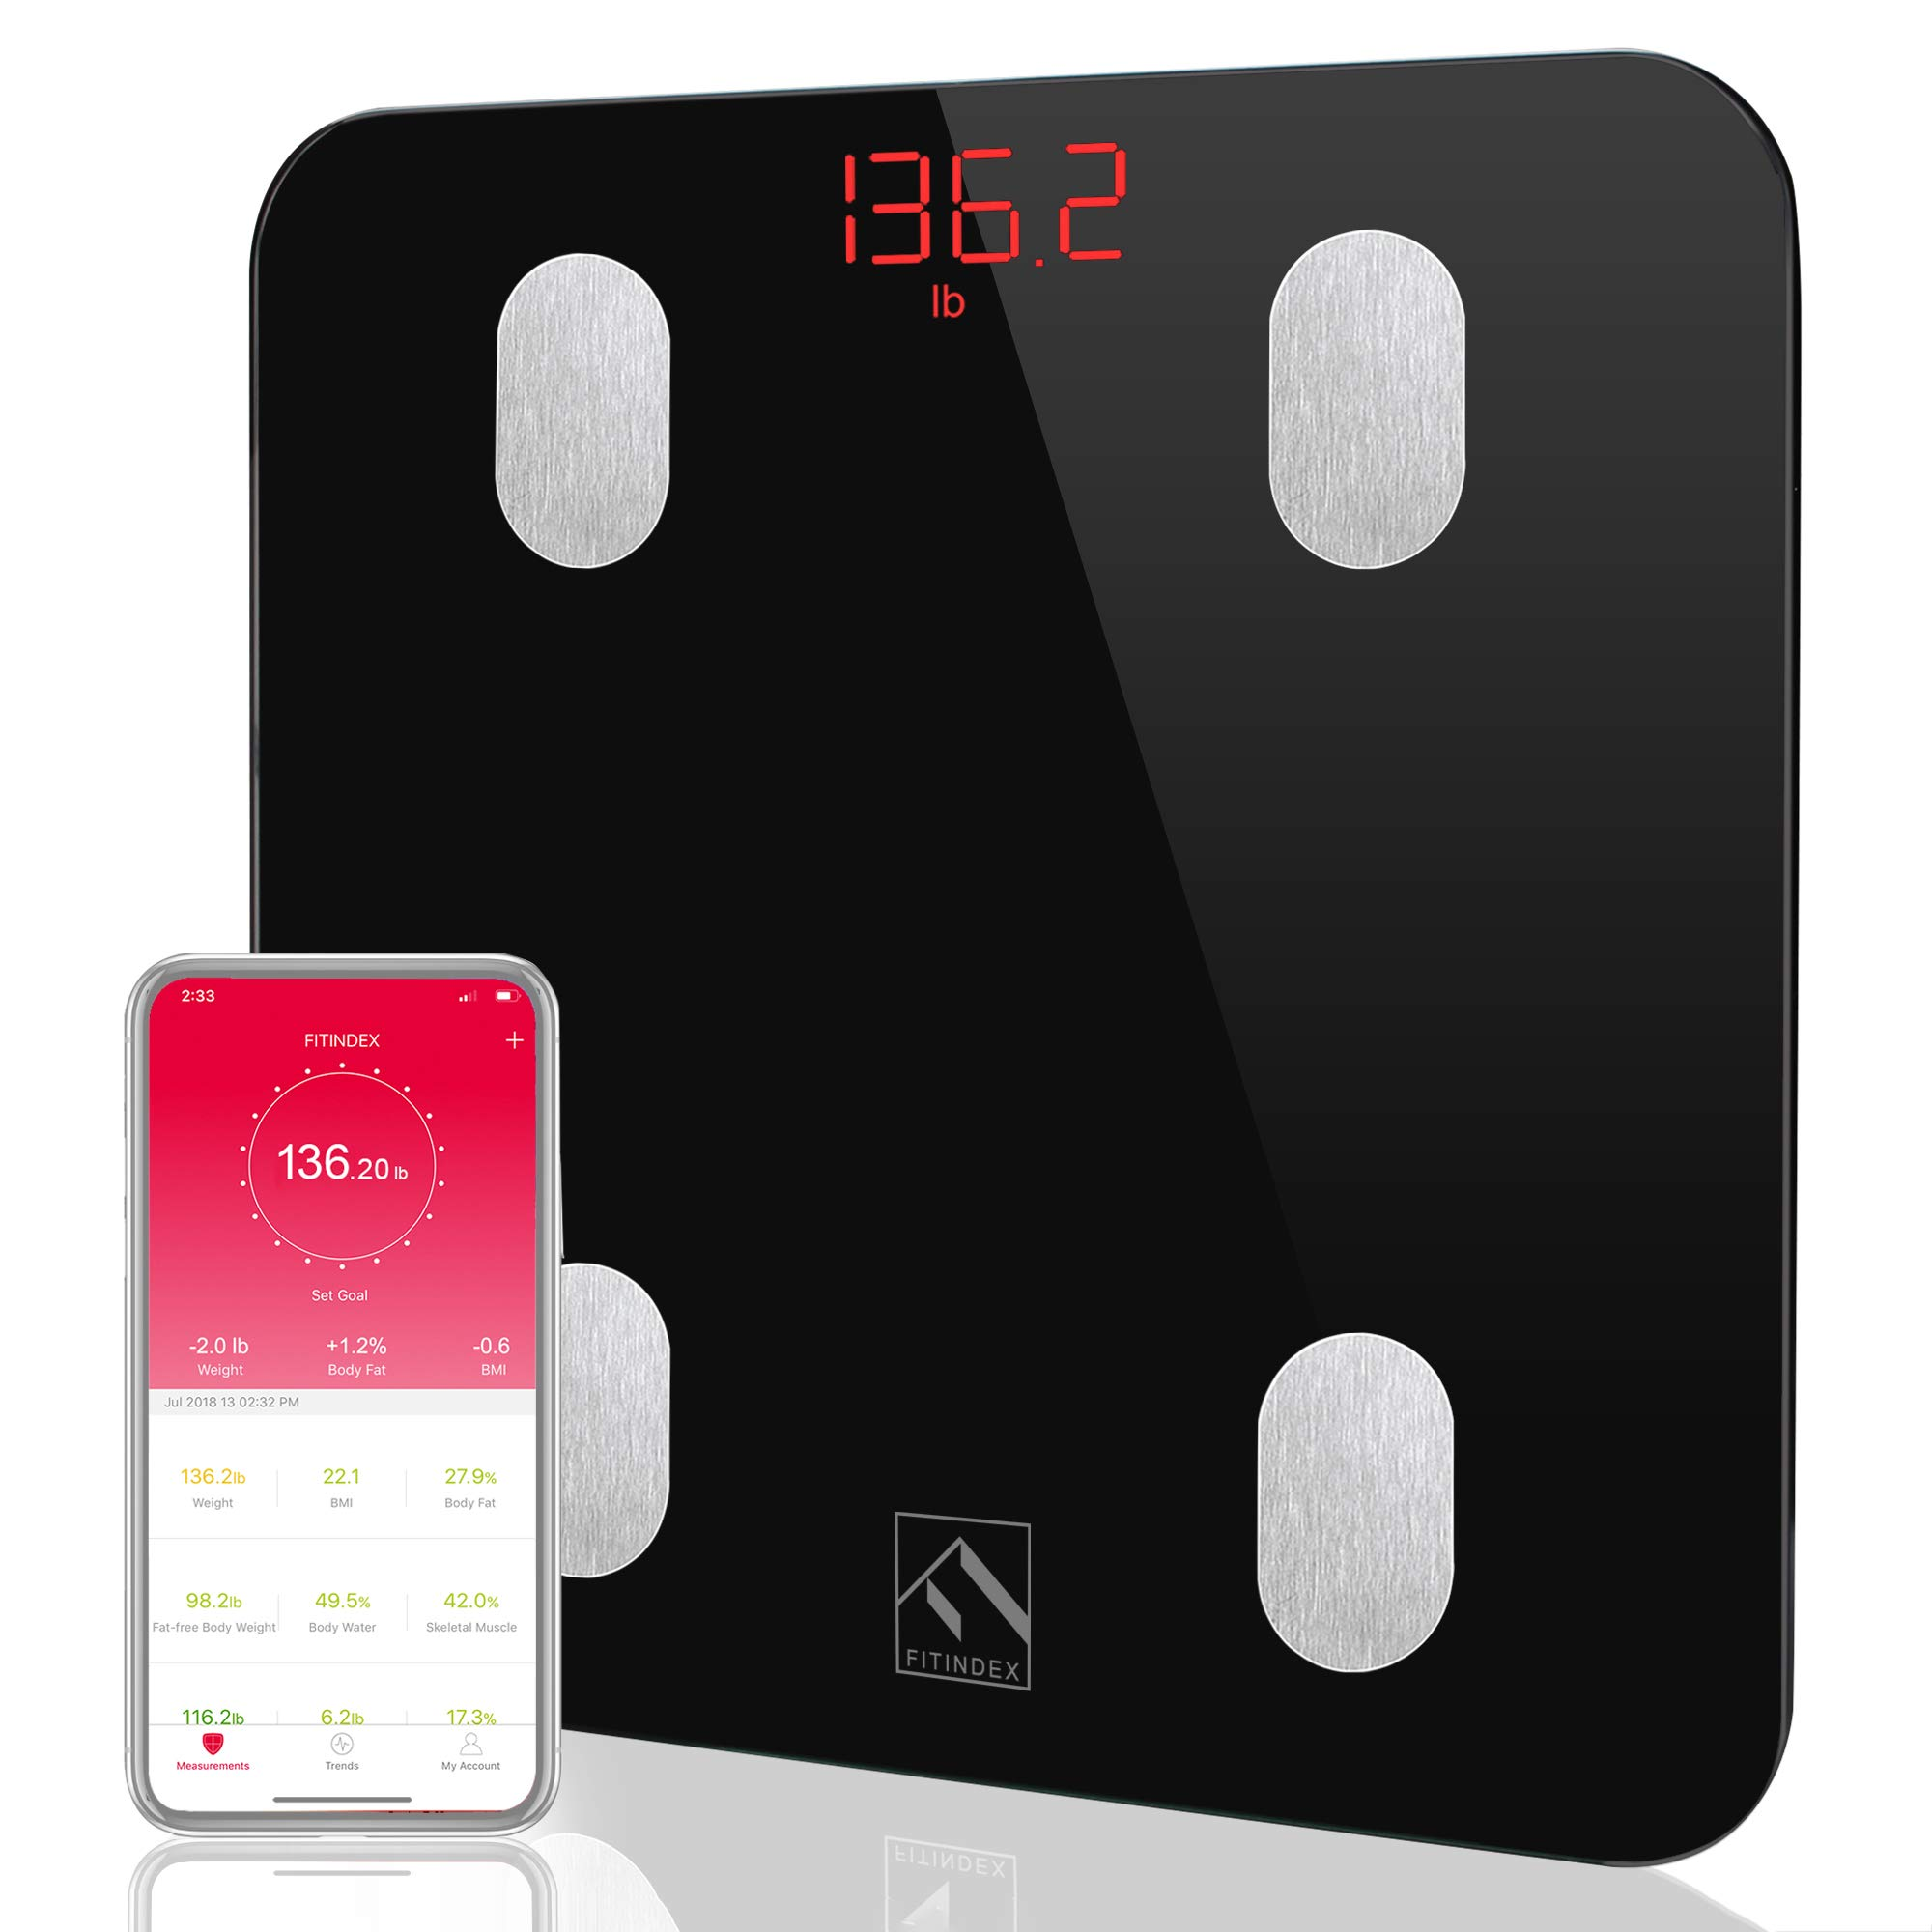 Bluetooth Body Fat Scale, FITINDEX Smart Wireless Digital Bathroom Weight Scale Body Composition Monitor Health Monitor with iOS & Android APP for Body Weight, Fat, Water, BMI, BMR, Muscle Mass